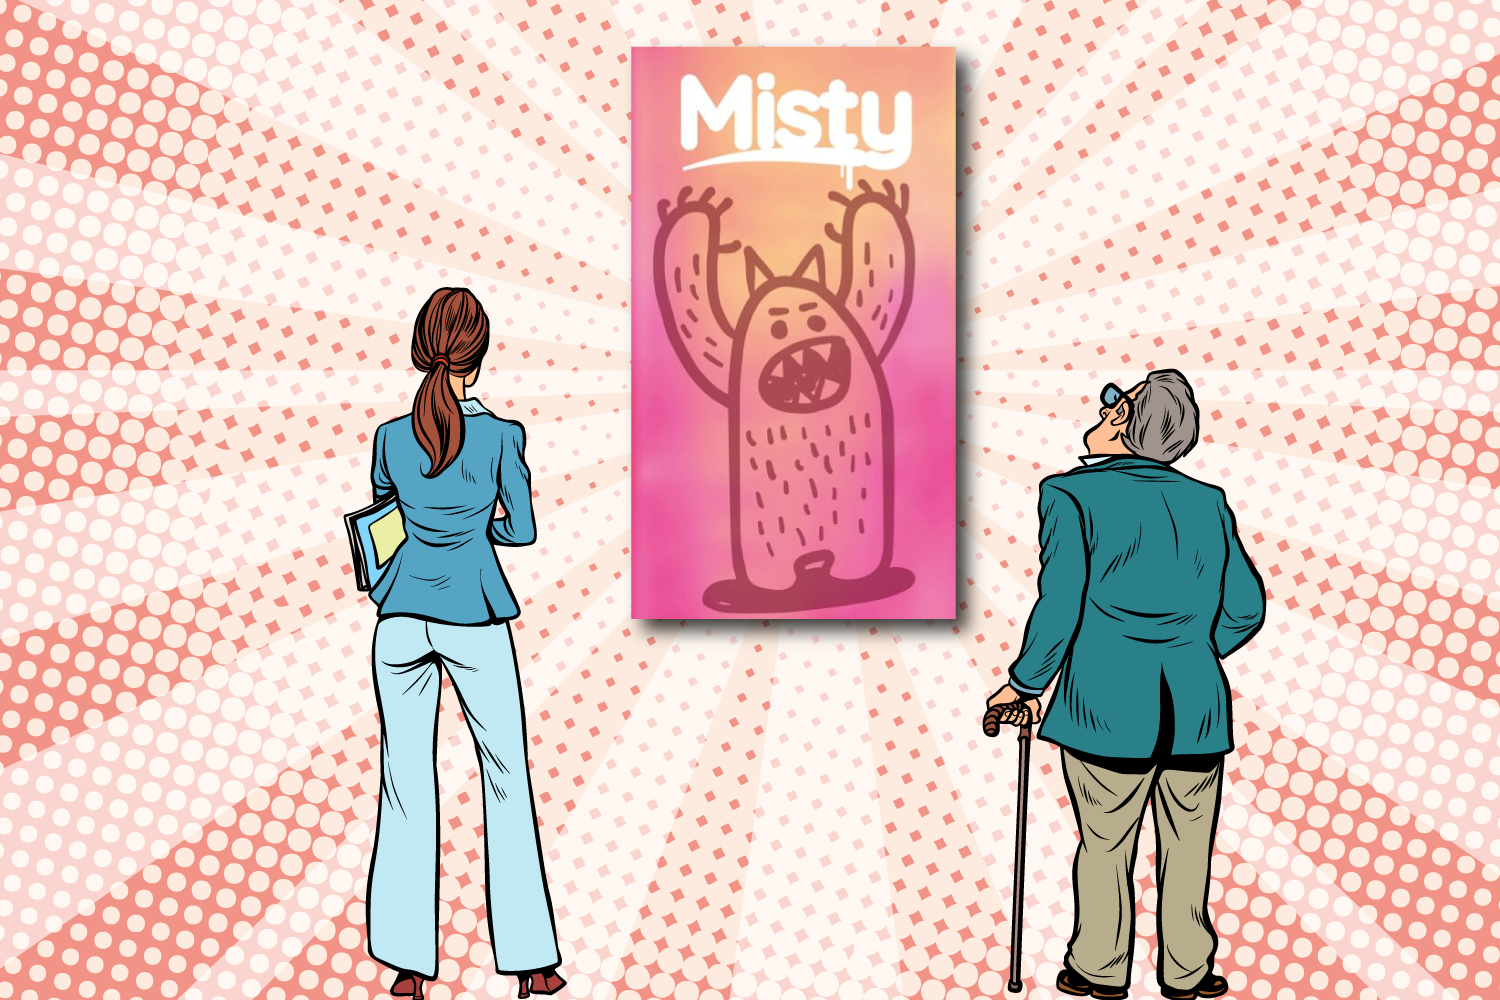 Misty-Board-Game-Review-Card-Game